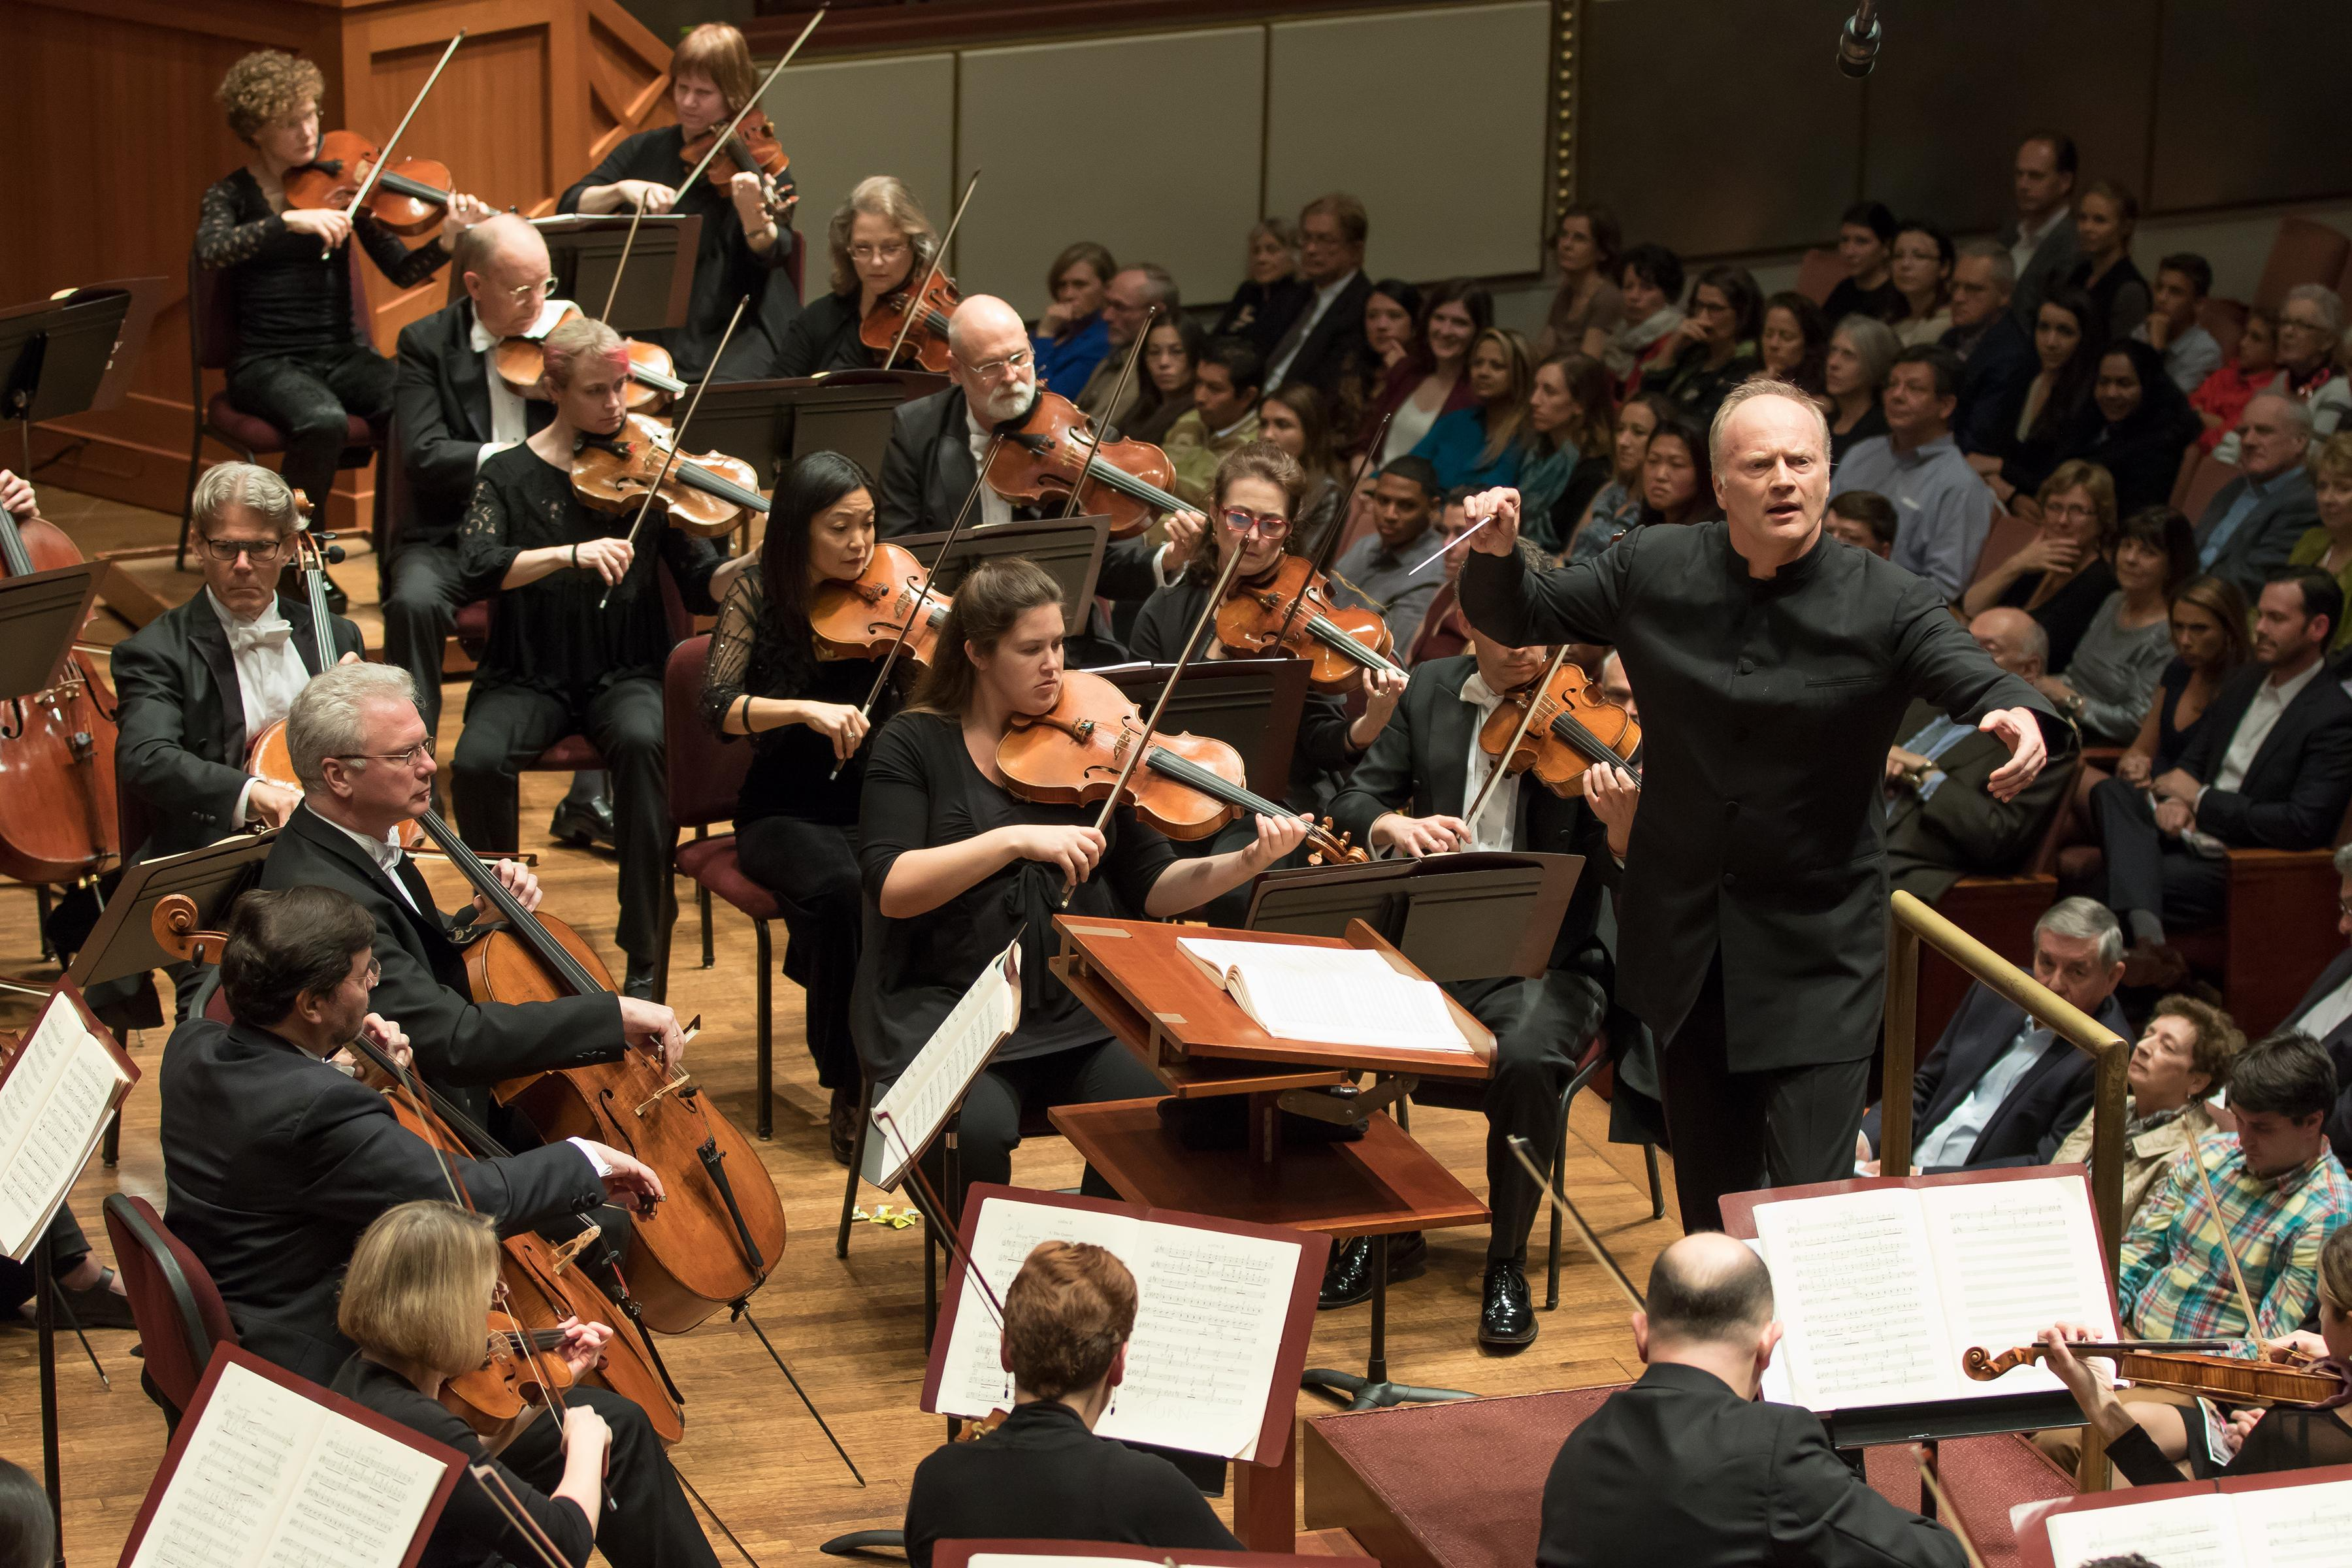 Music Director Gianandrea Noseda will lead the National Symphony Orchestra (NSO) in a free performance at the Anthem on November 15 at 7:30 p.m. This will mark the first orchestral performance at The Anthem, and is one of three community-oriented performances the NSO will give in 2017/2018, Noseda's inaugural season as music director. The free concerts are Noseda's attempt to deepen the connection between his orchestra and the community while also furthering D.C.'s interest in orchestra music in general. (Image: Scott Suchman)<p></p>